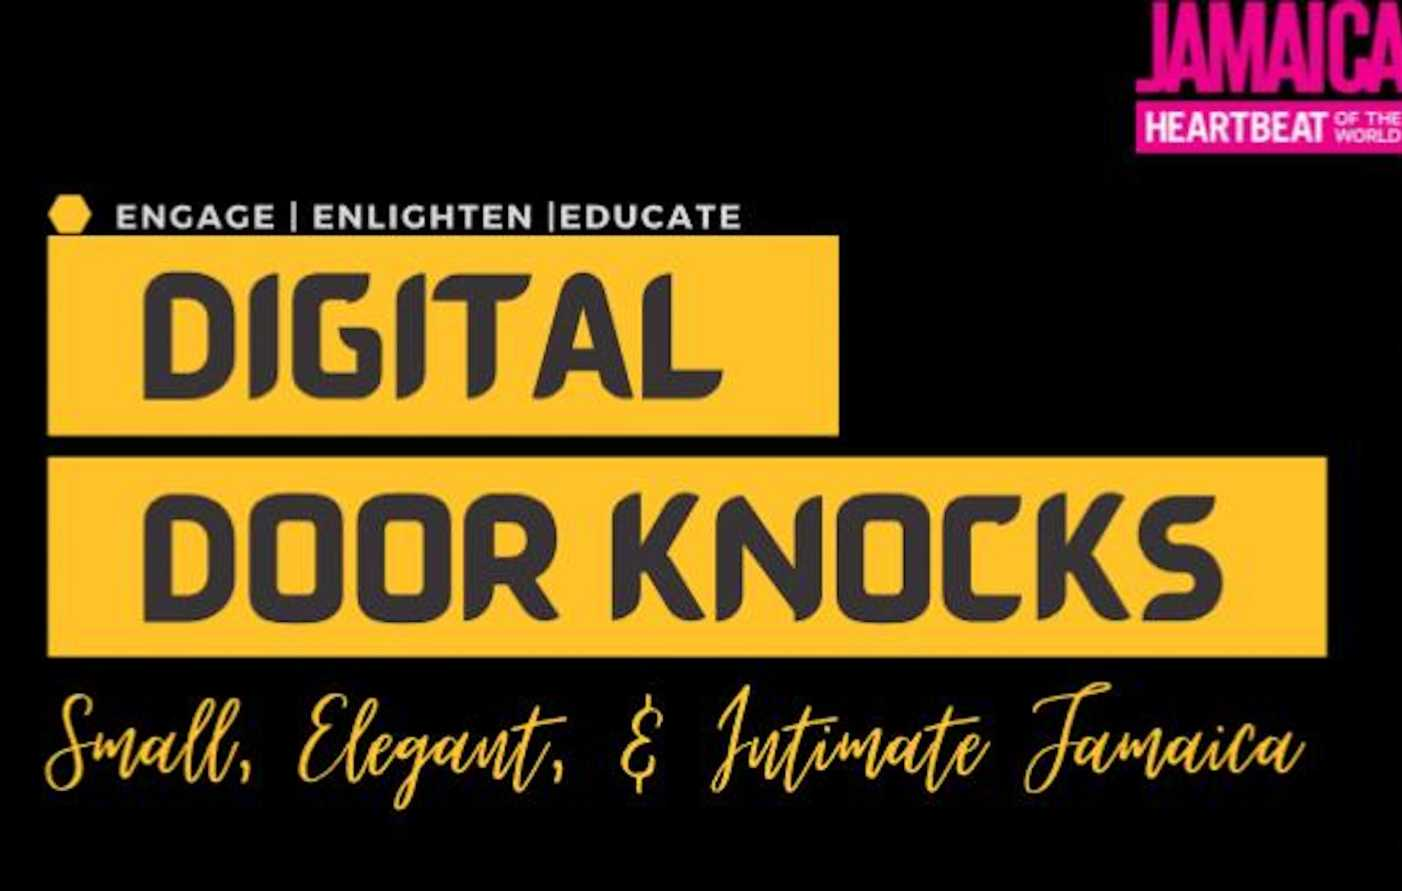 SP Digital Door Knocks